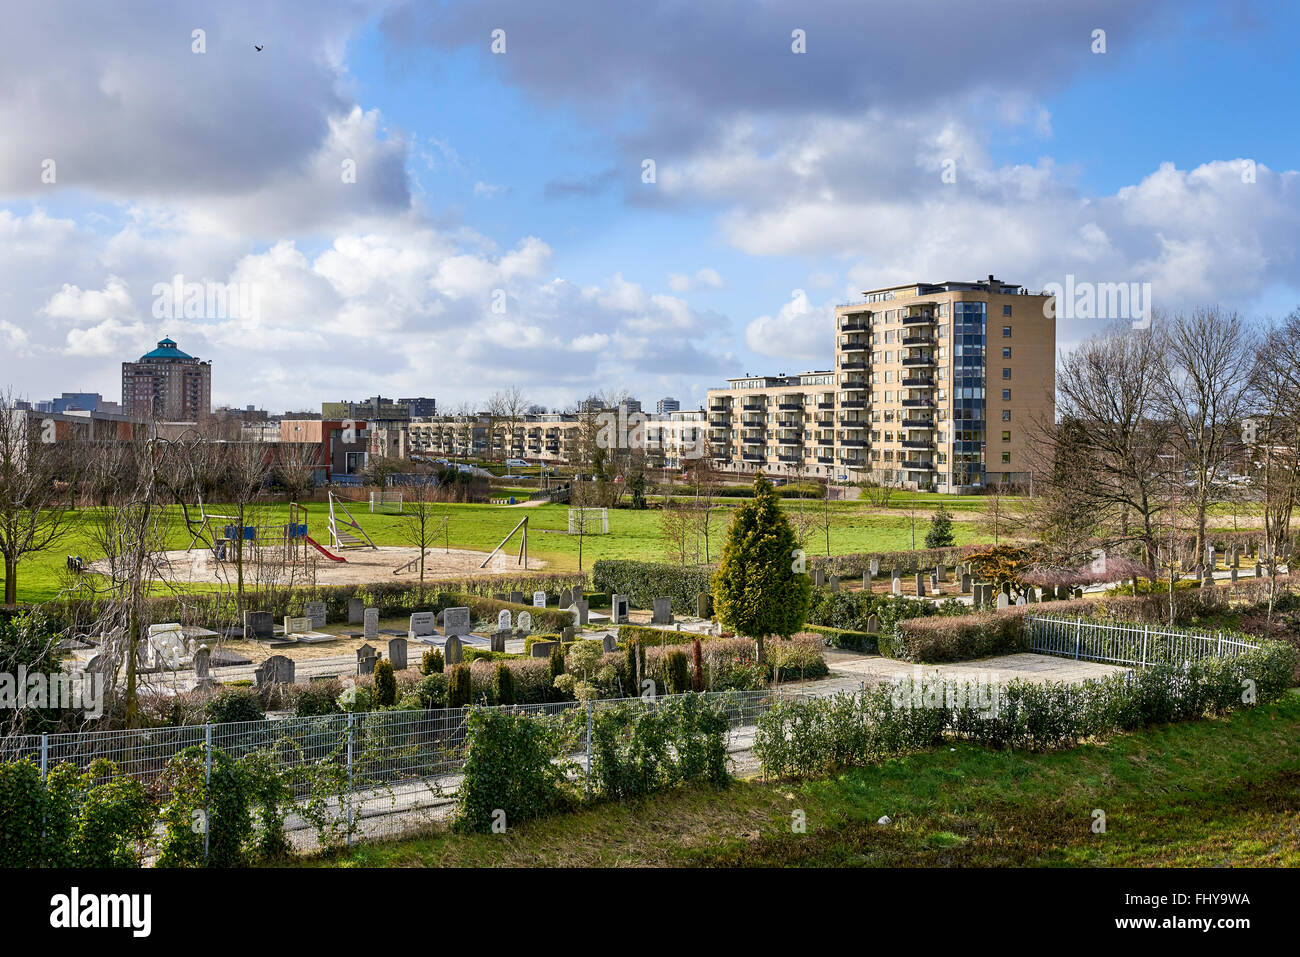 Graveyard, playground and apartment buildings. - Stock Image